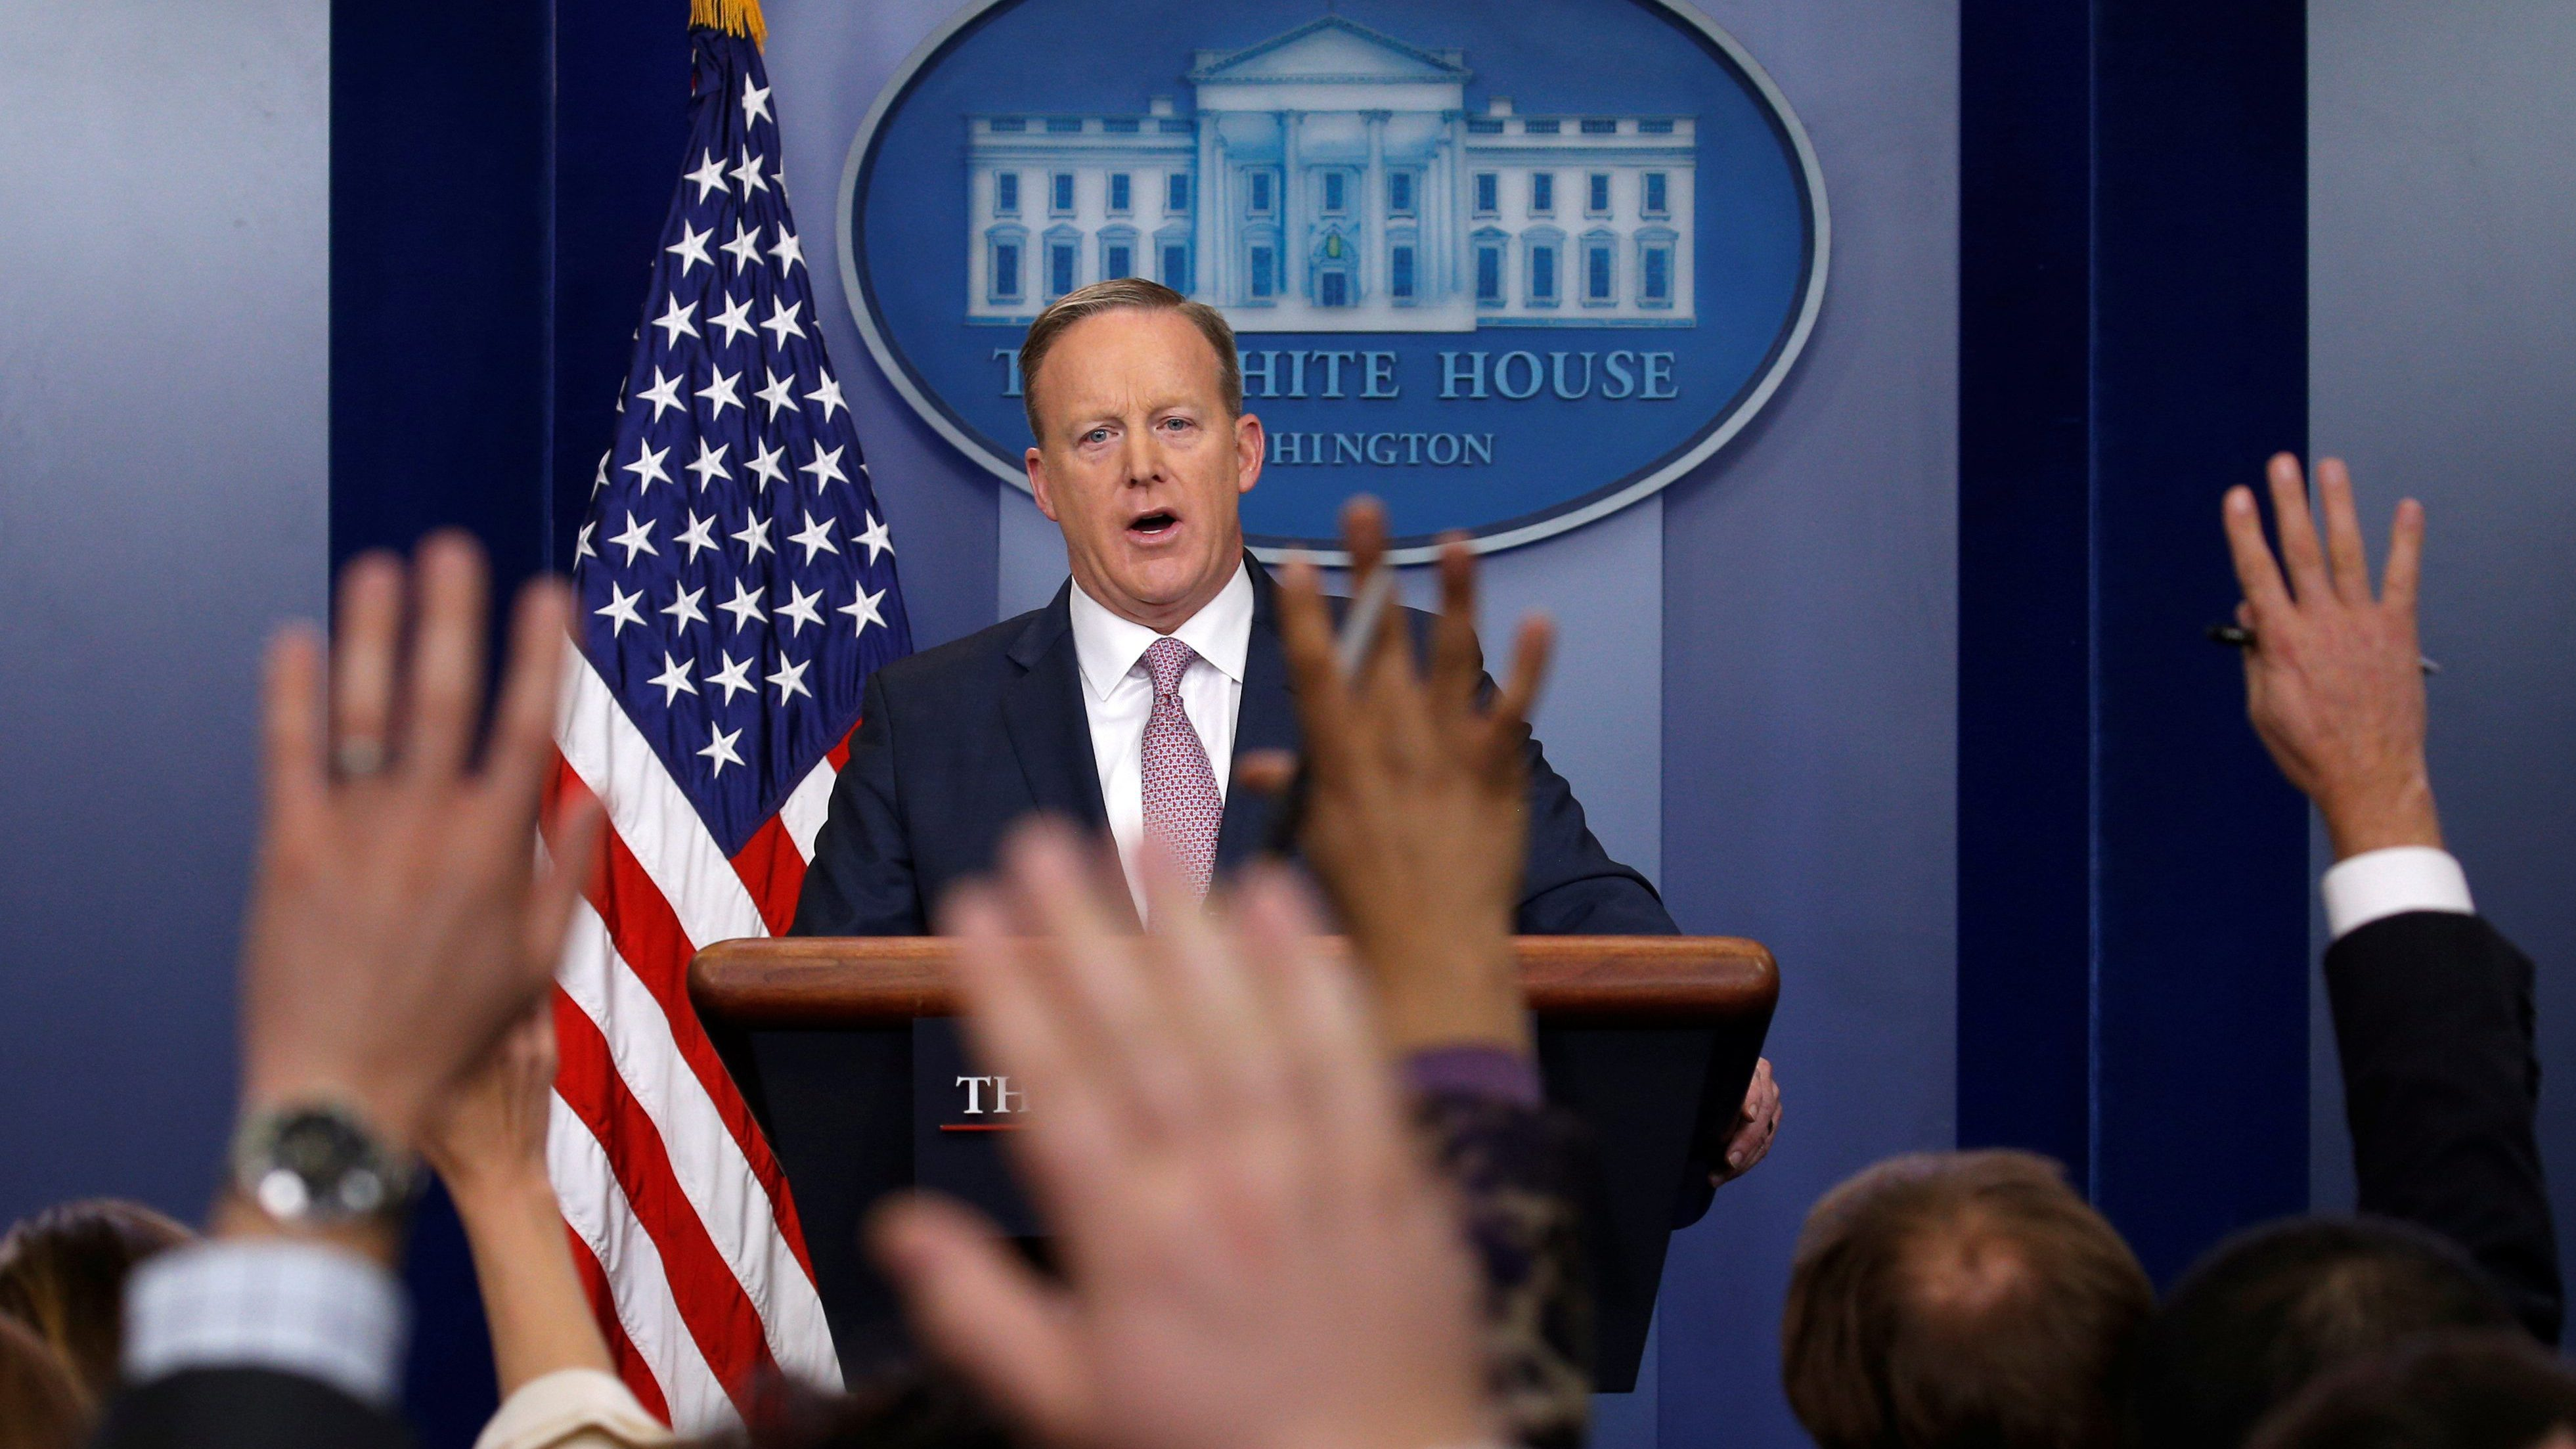 White House spokesman Sean Spicer holds a press briefing at the White House in Washington January 23, 2017.  REUTERS/Kevin Lamarque - RTSX0KK